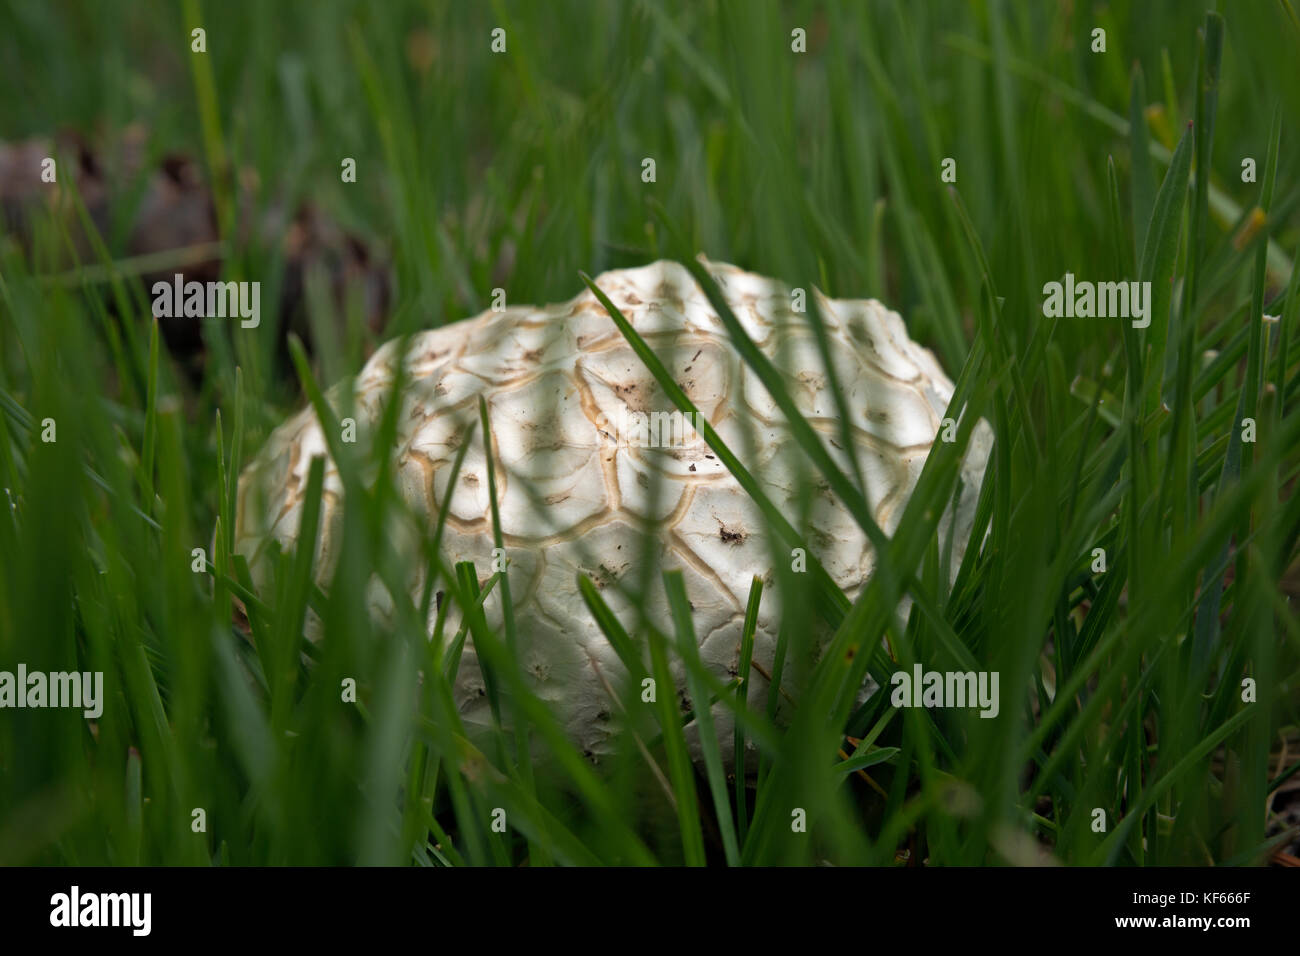 WY02479-00...WYOMING - An unusual mushroom found in a meadow near Taggart Lake in Grand Teton National Park. - Stock Image